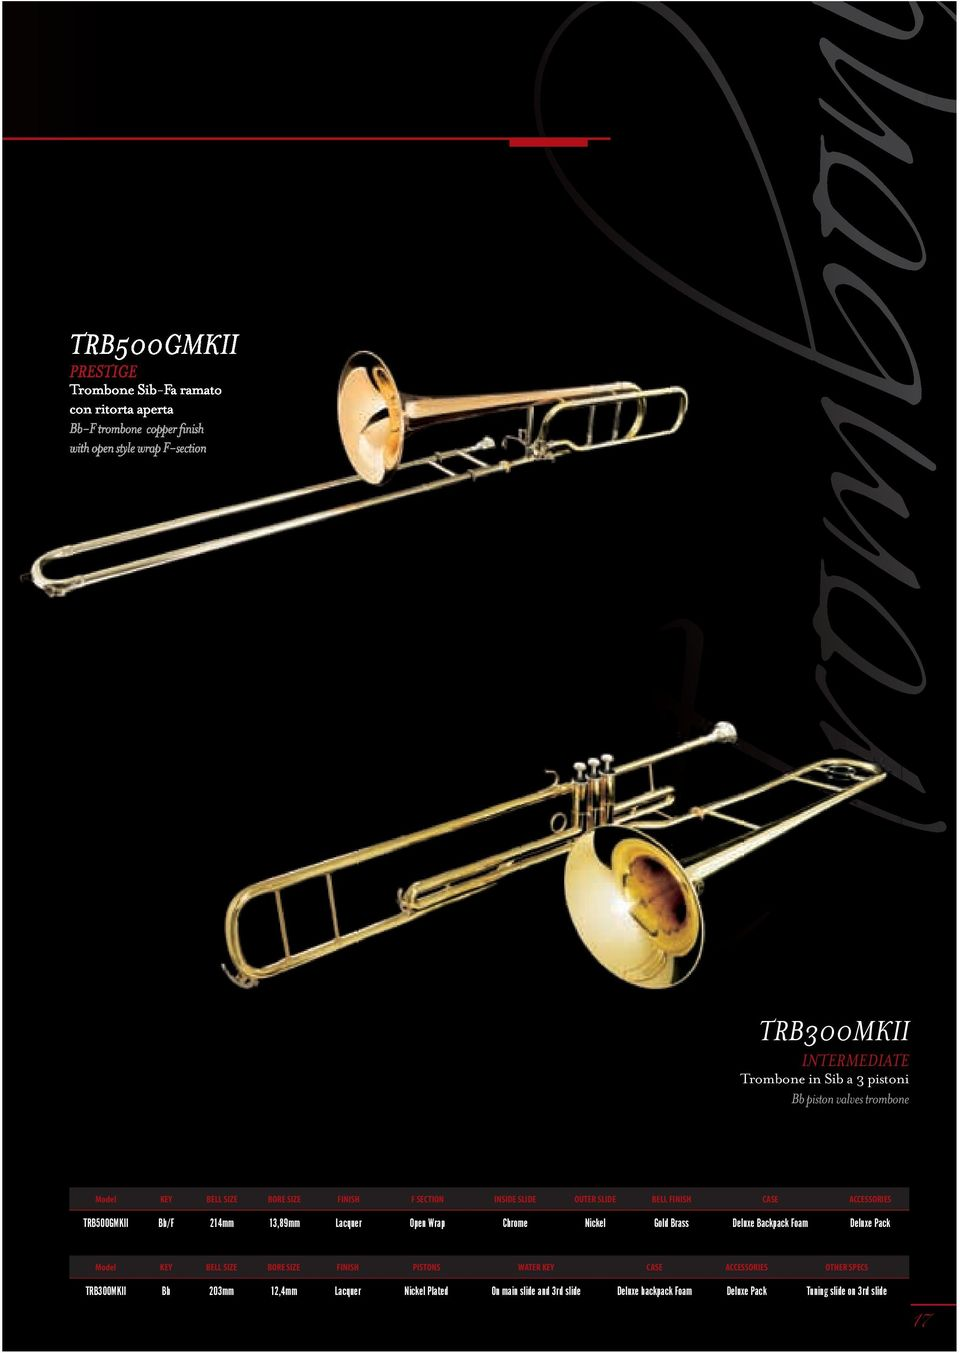 valves trombone Model KEY BELL SIZE BORE SIZE FINISH F SECTION INSIDE SLIDE OUTER SLIDE BELL